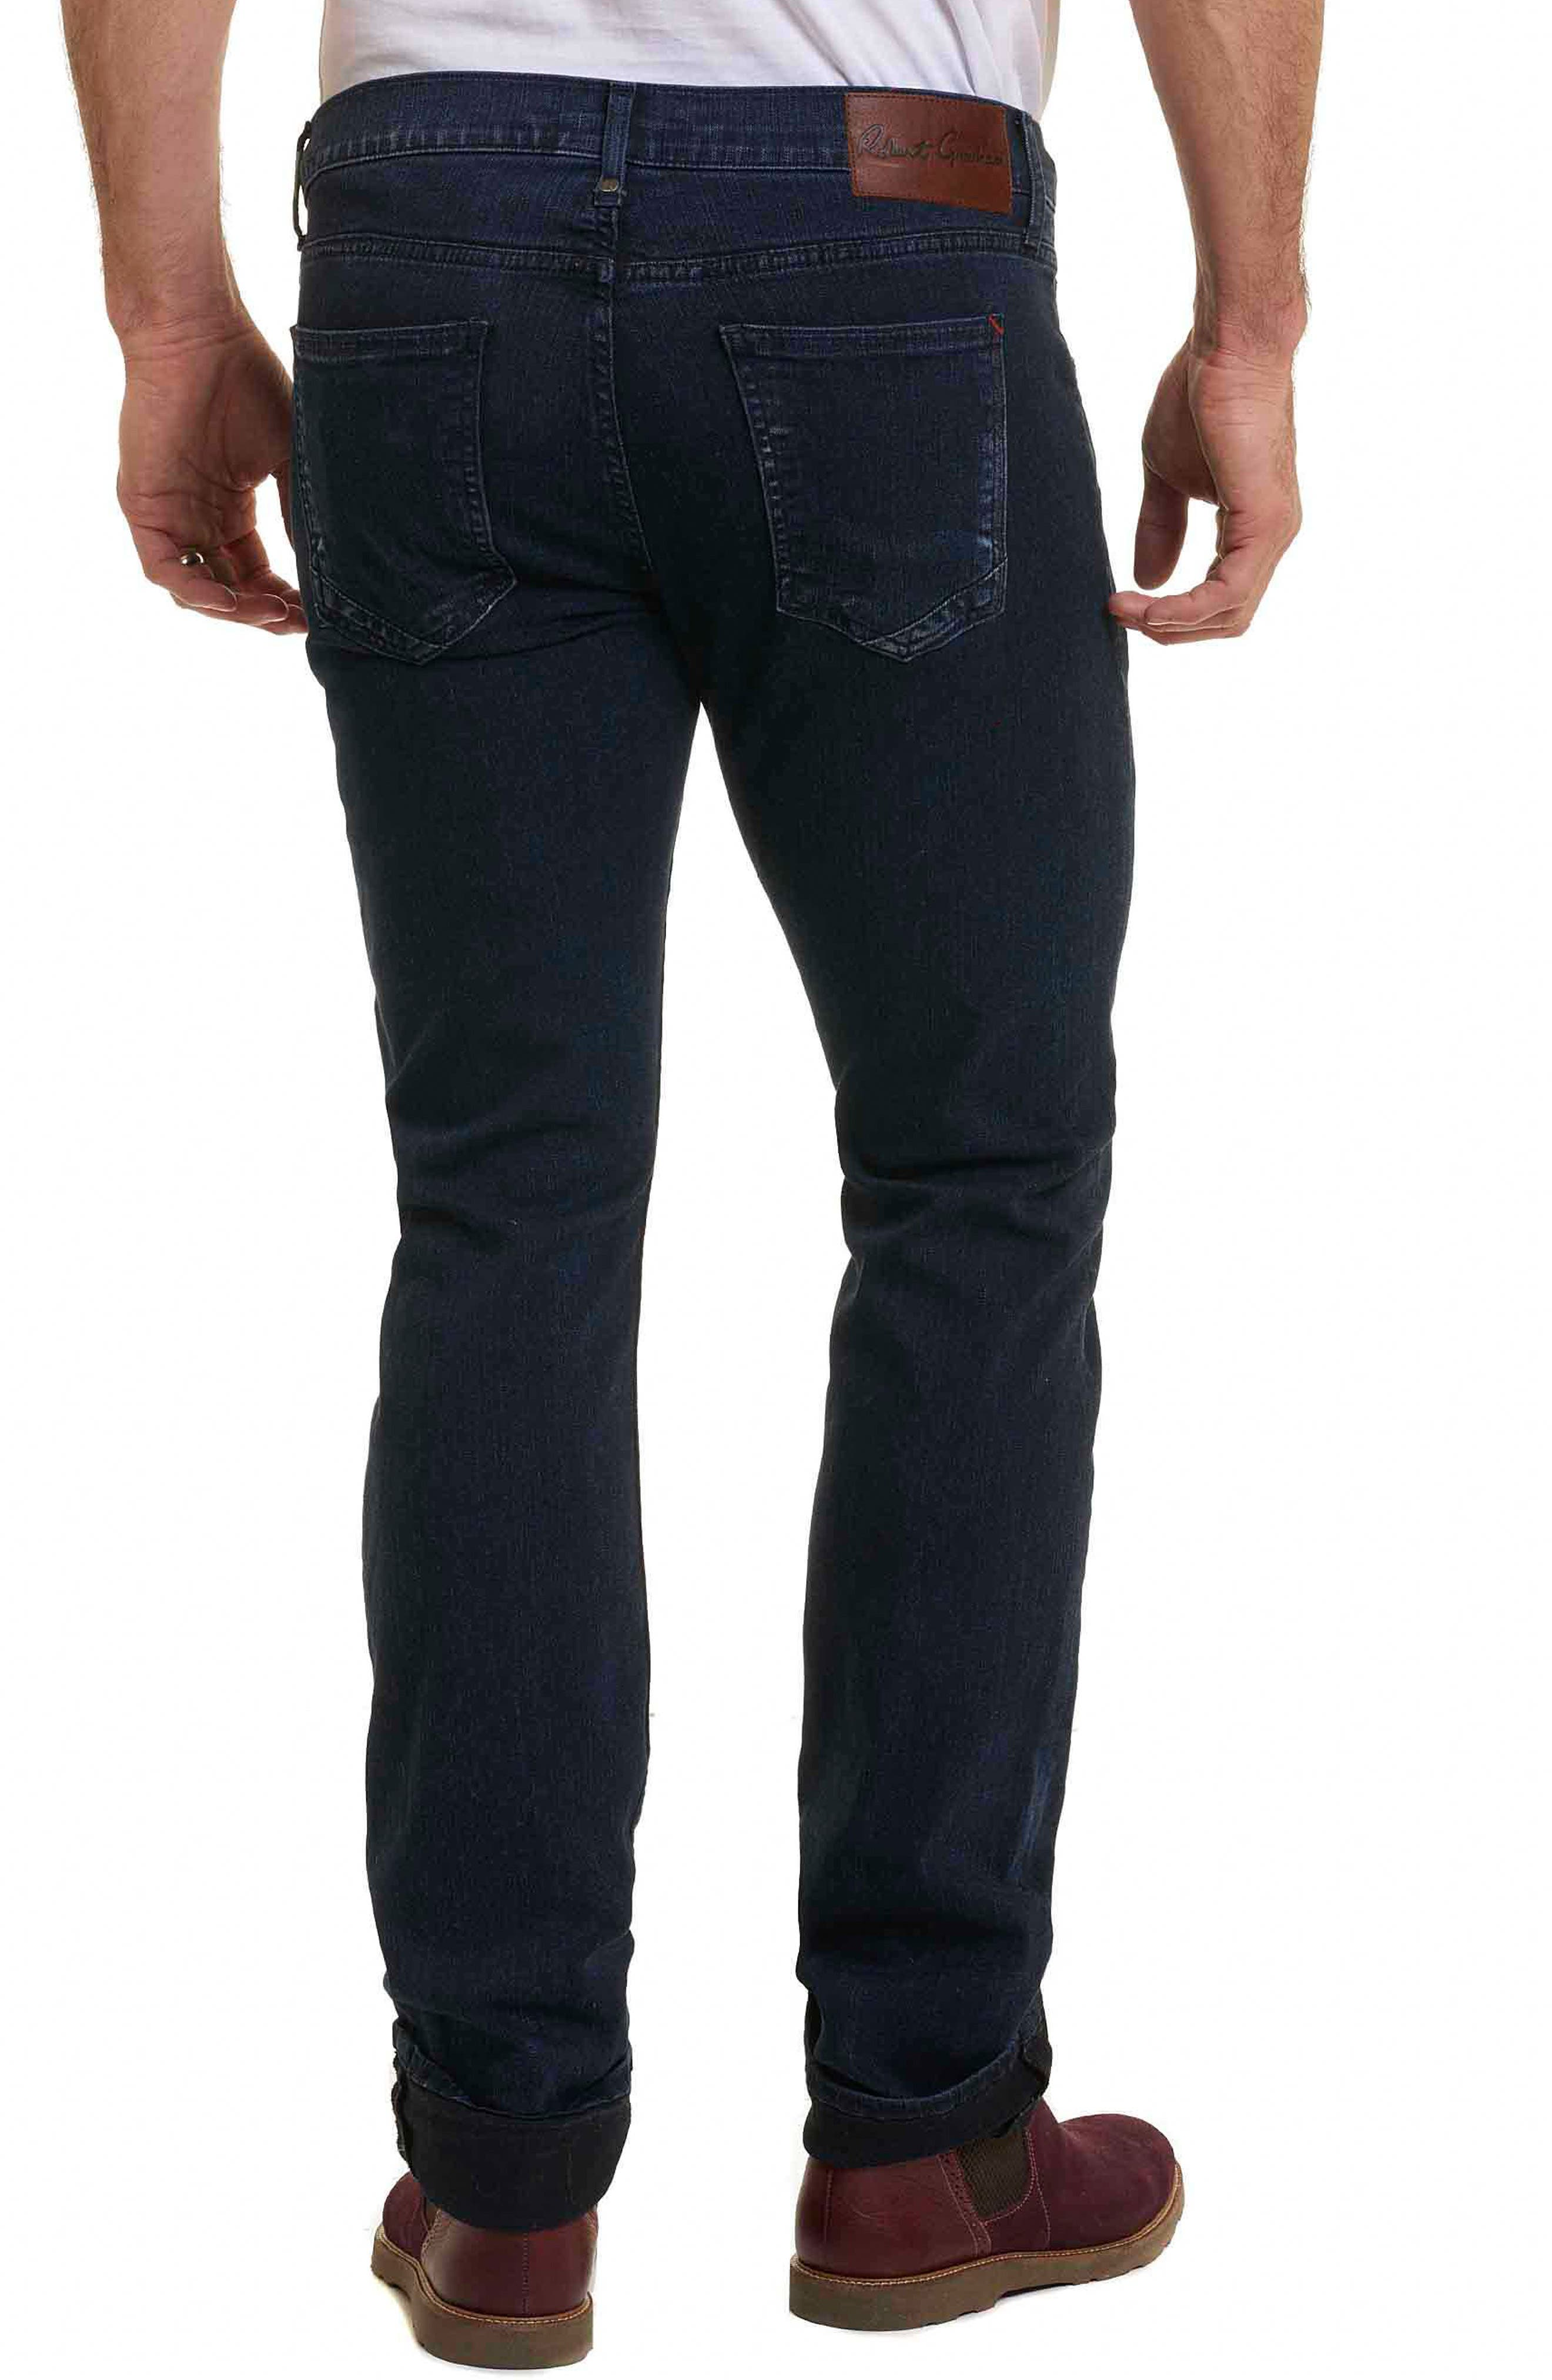 Adapt Classic Fit Jeans,                             Alternate thumbnail 2, color,                             Indigo